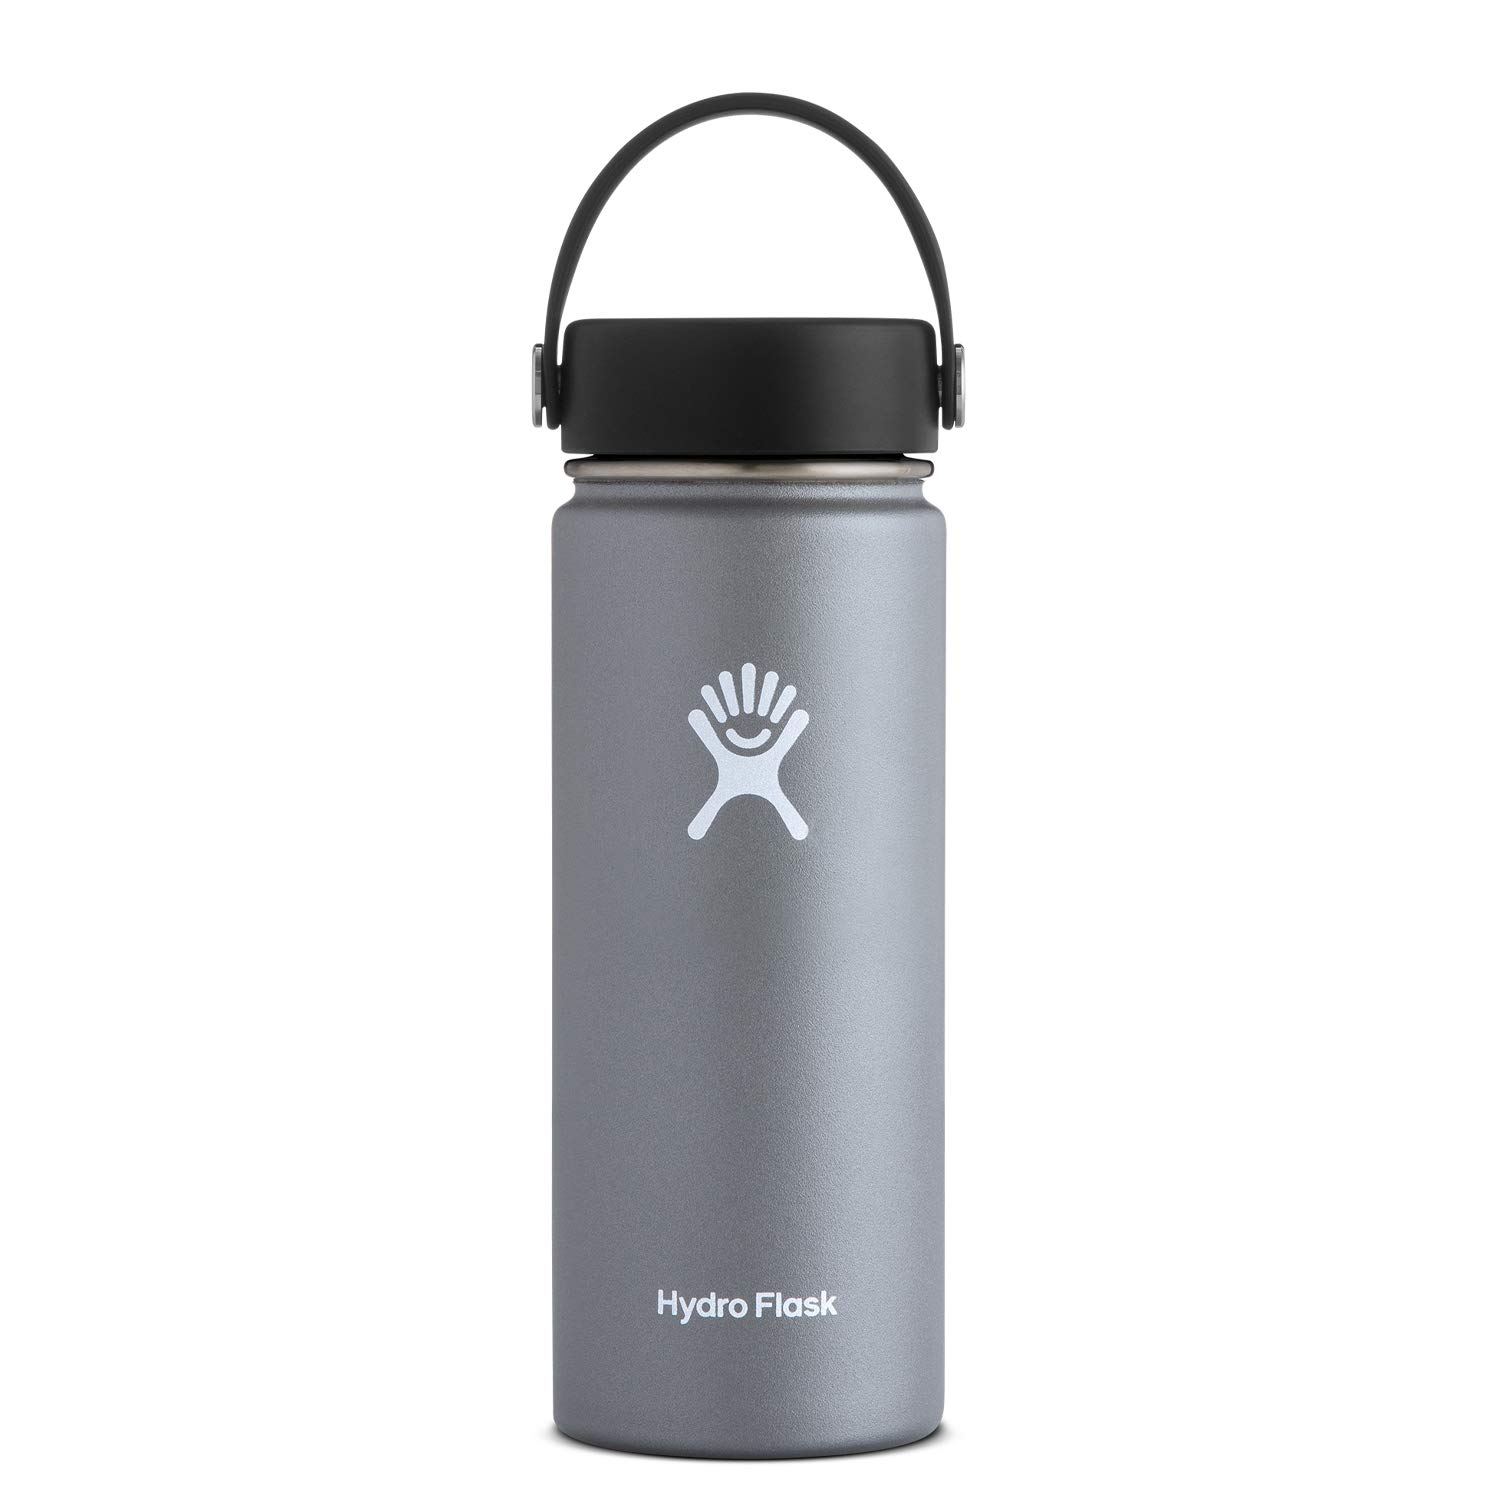 Top 10 Best Stainless Steel Water Bottle Reviews in 2020 7